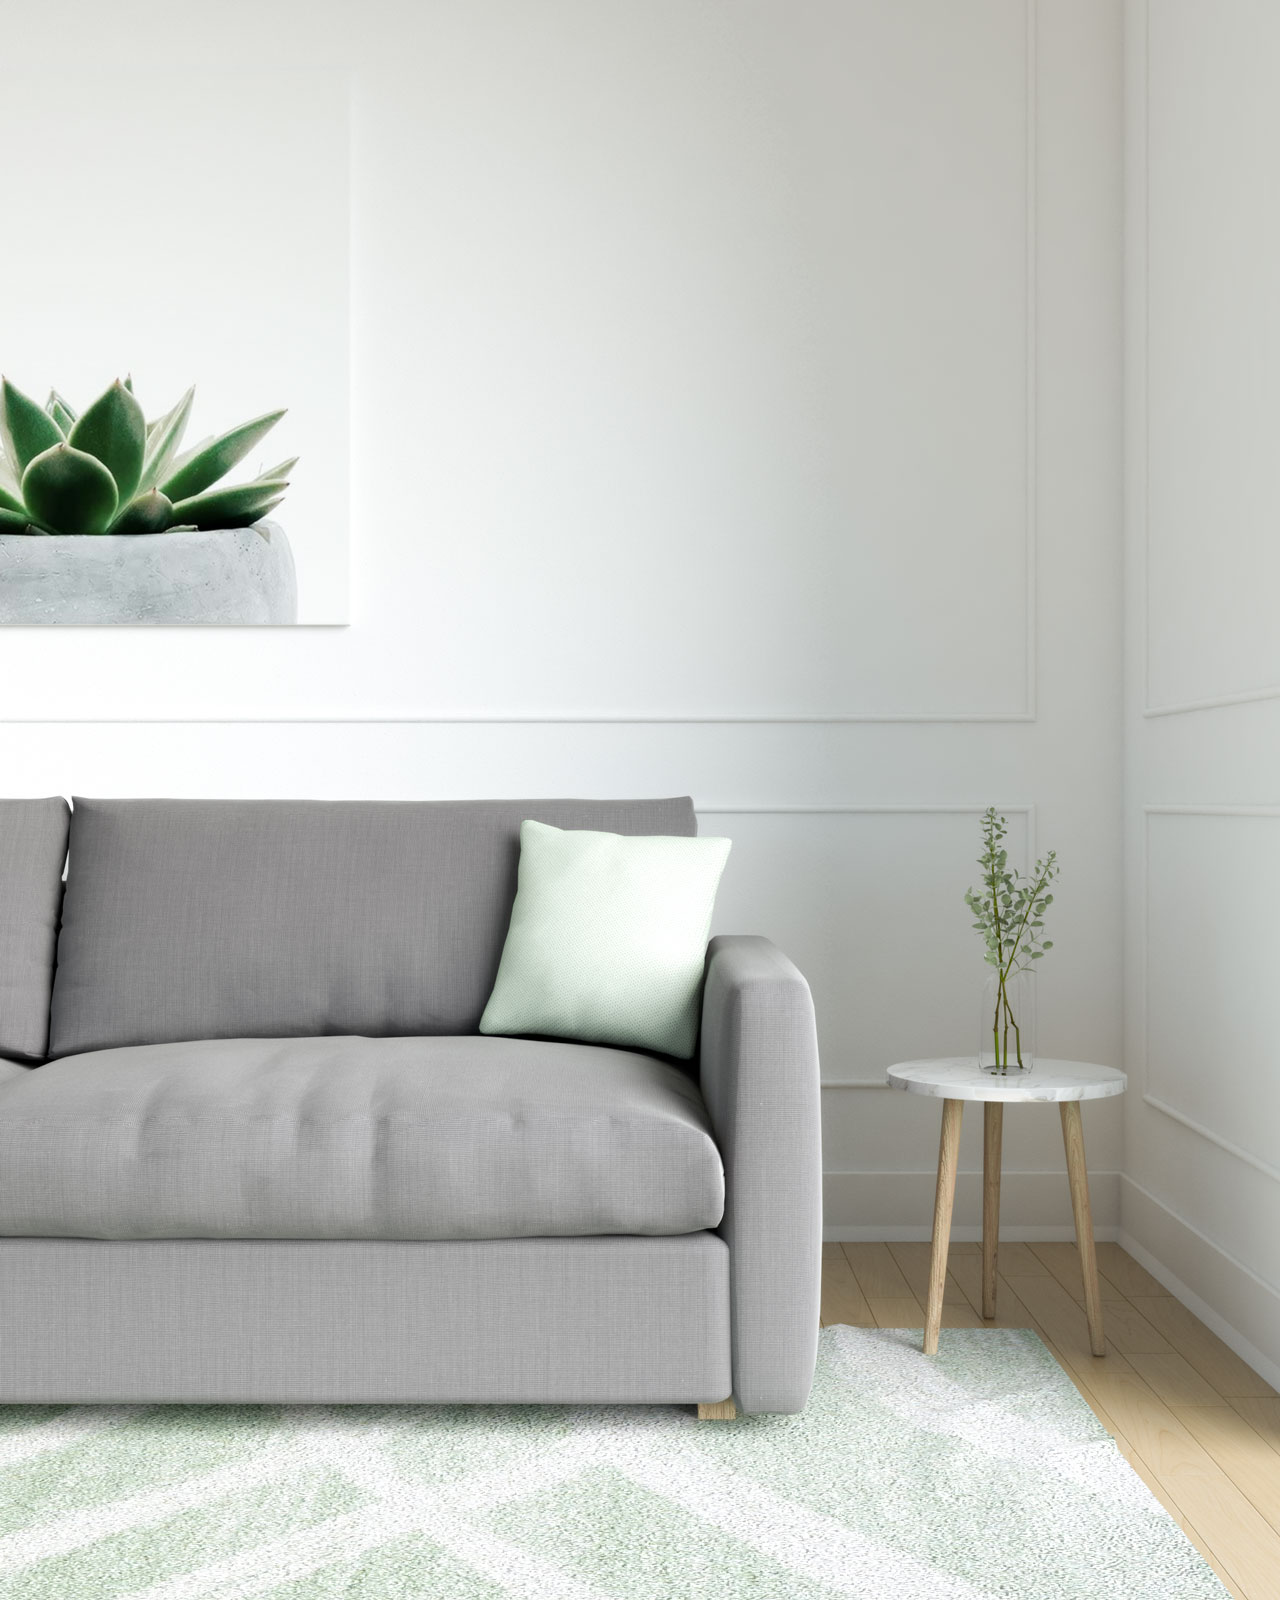 Light green cushion with grey couch